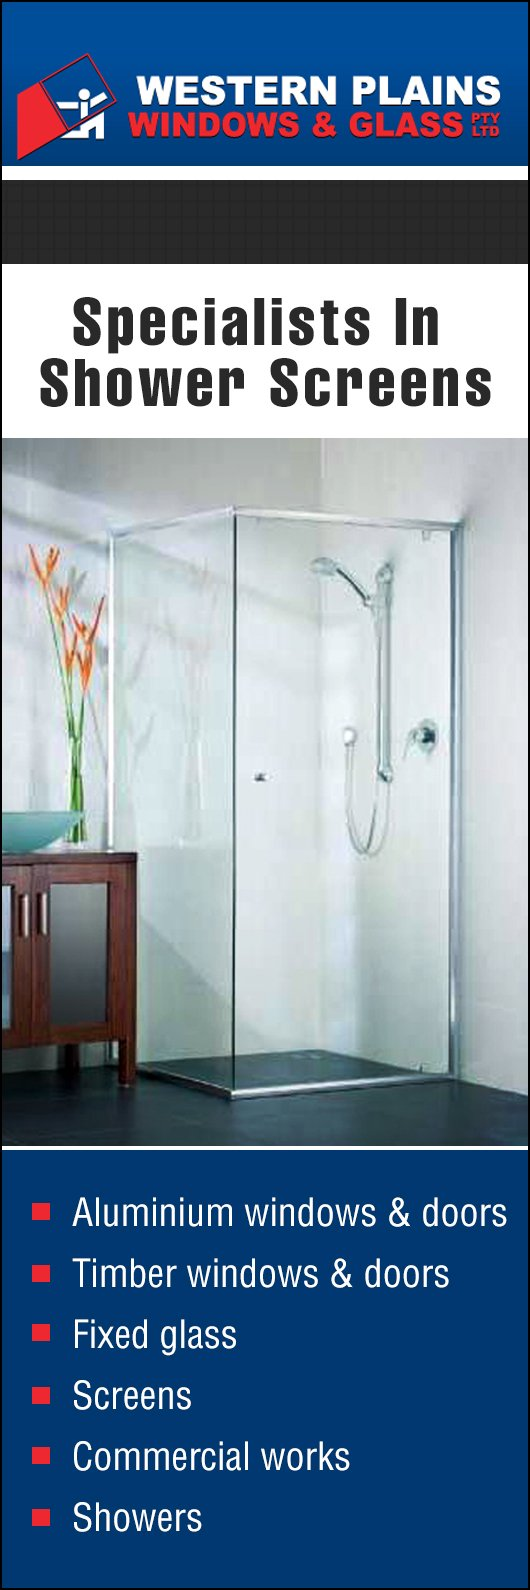 Residential windows commercial windows marine windows products - Western Plains Windows Glass P L Promotion